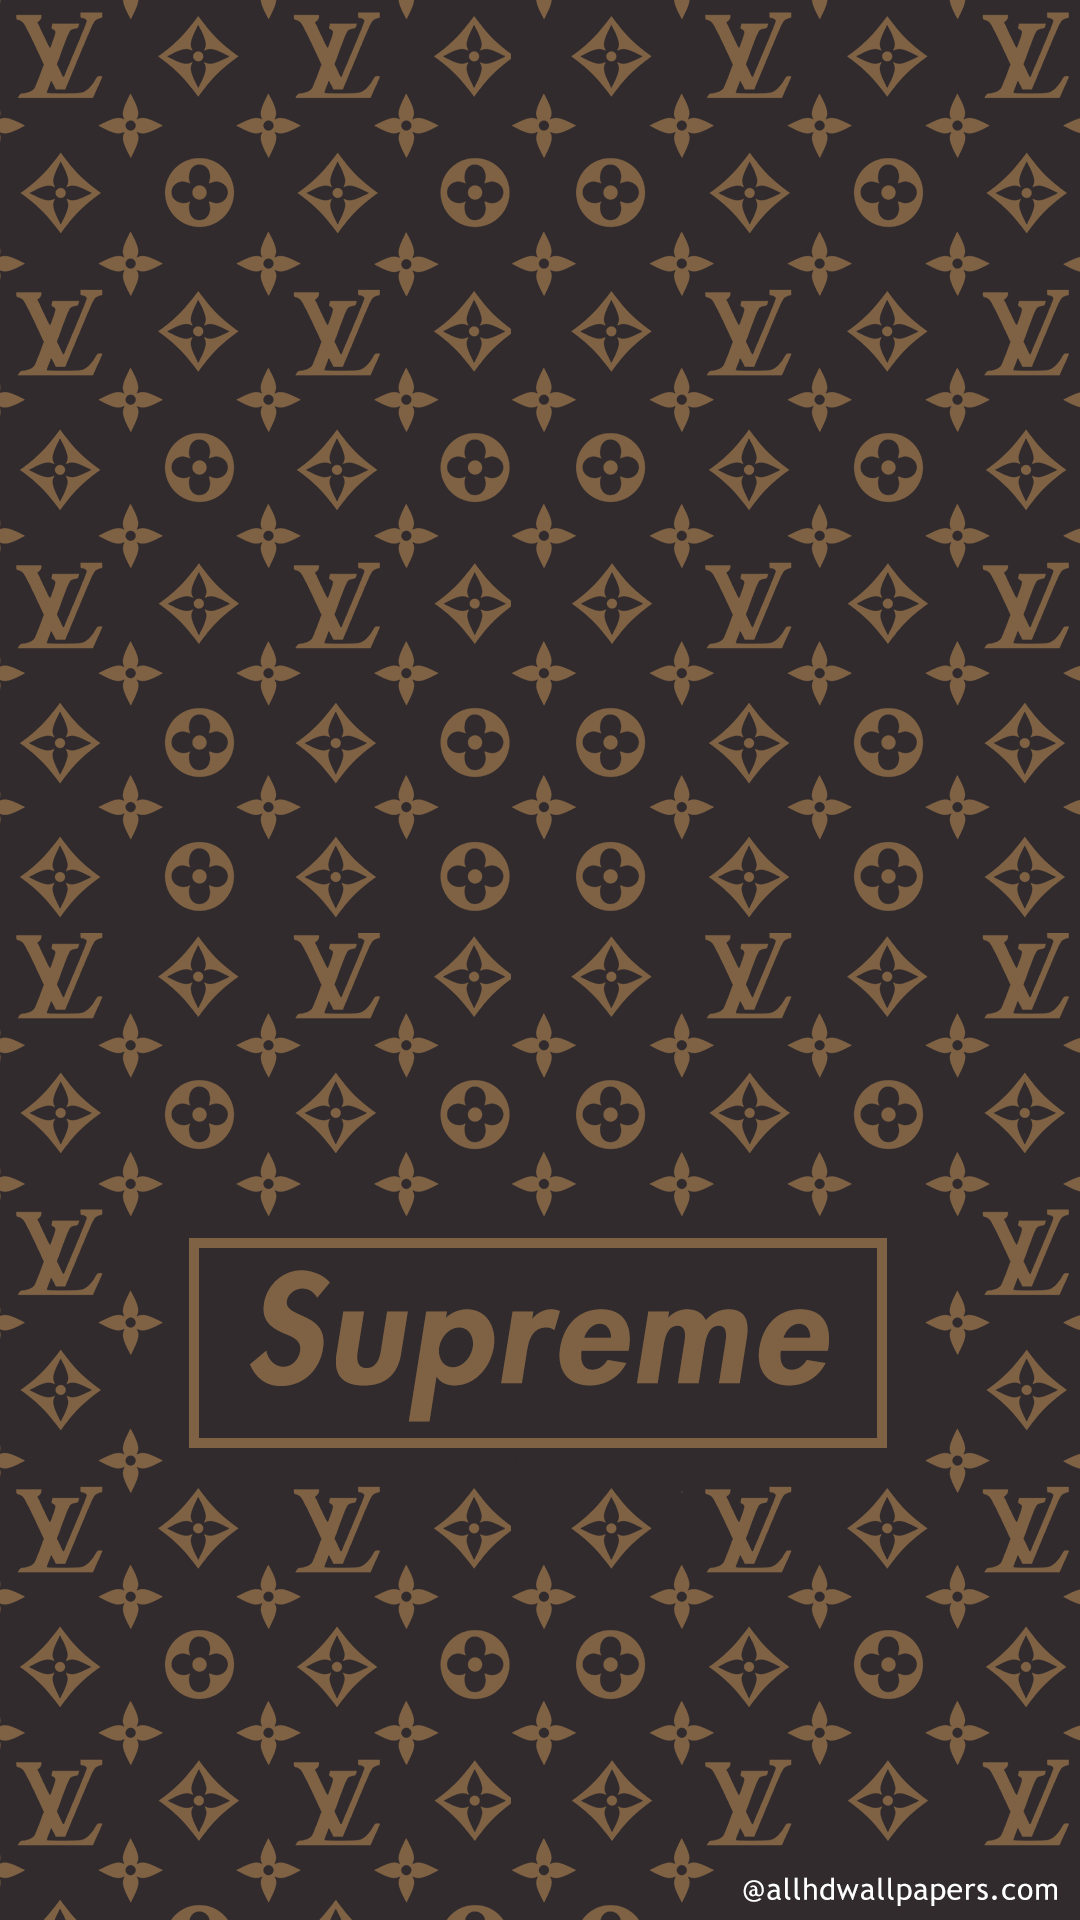 Supreme Wallpaper for mobile